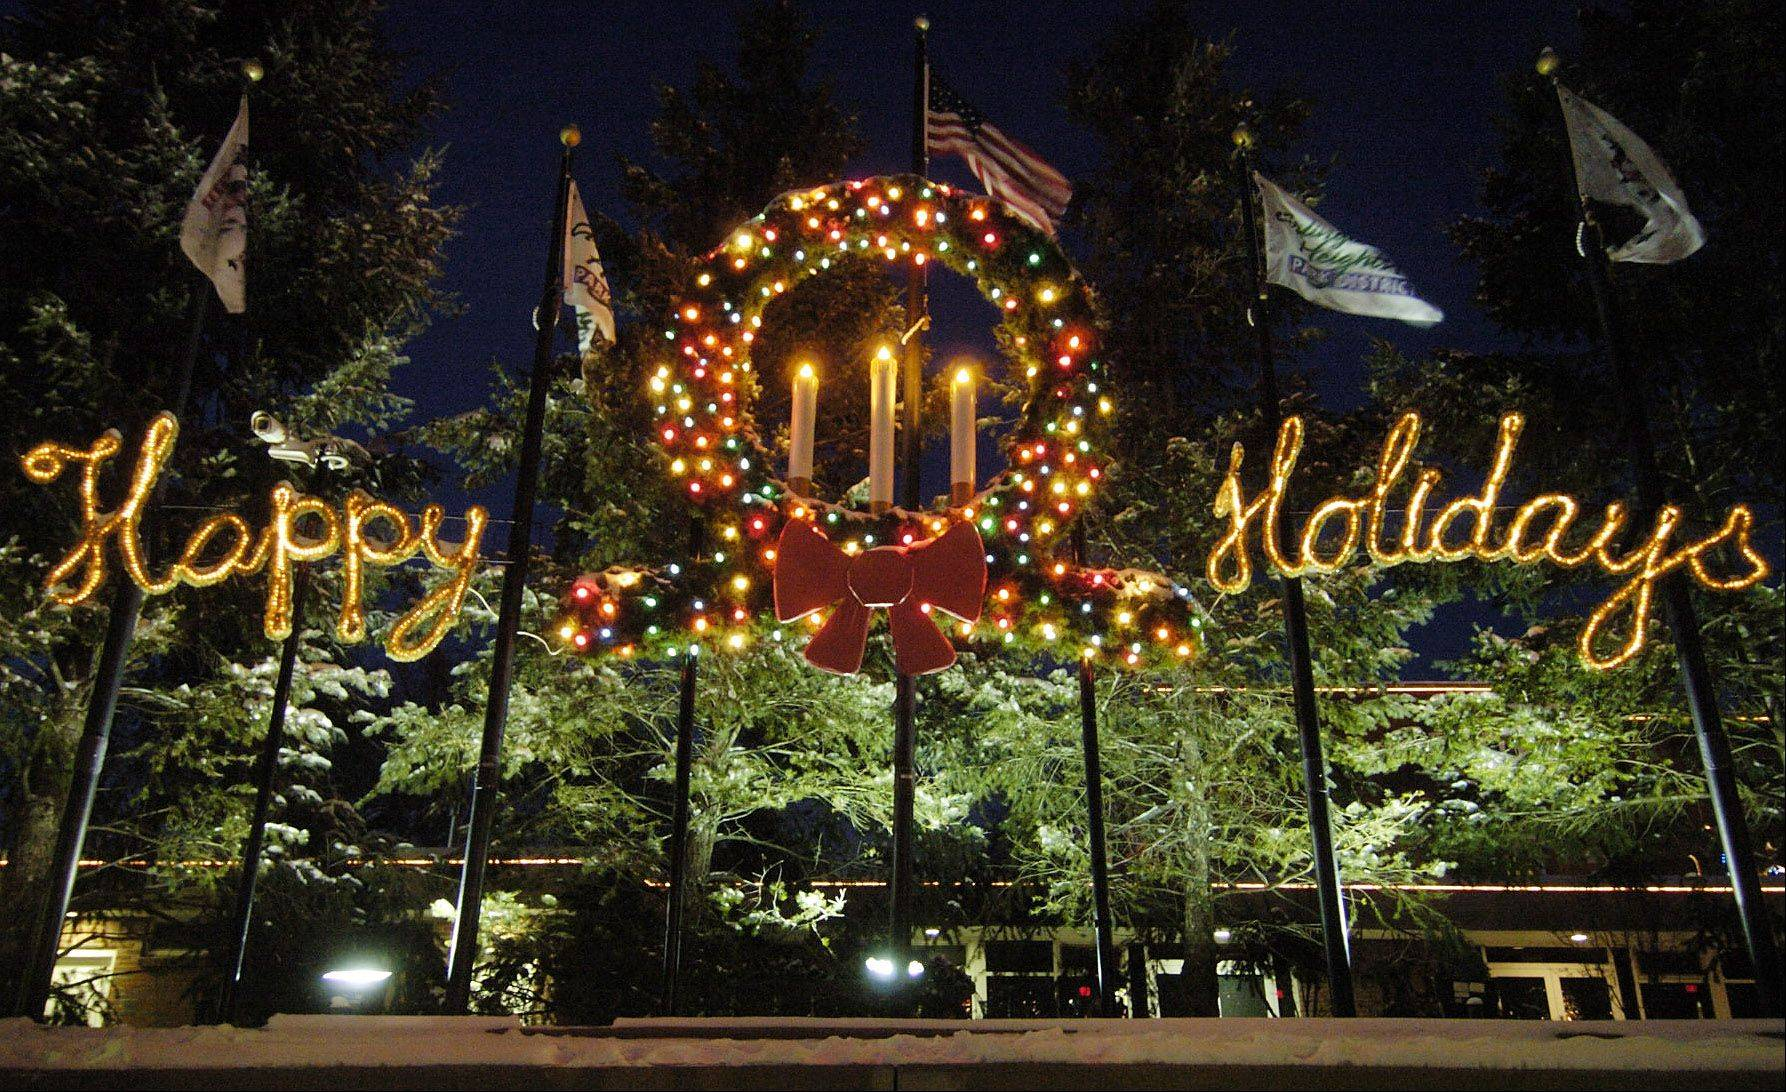 A controversial Nativity scene could find a place in Arlington Heights� holiday lights display at North School Park as early as this weekend, according to a leader of group fighting to make that happen. An application to allow the Nativity is before Arlington Heights Park District officials.